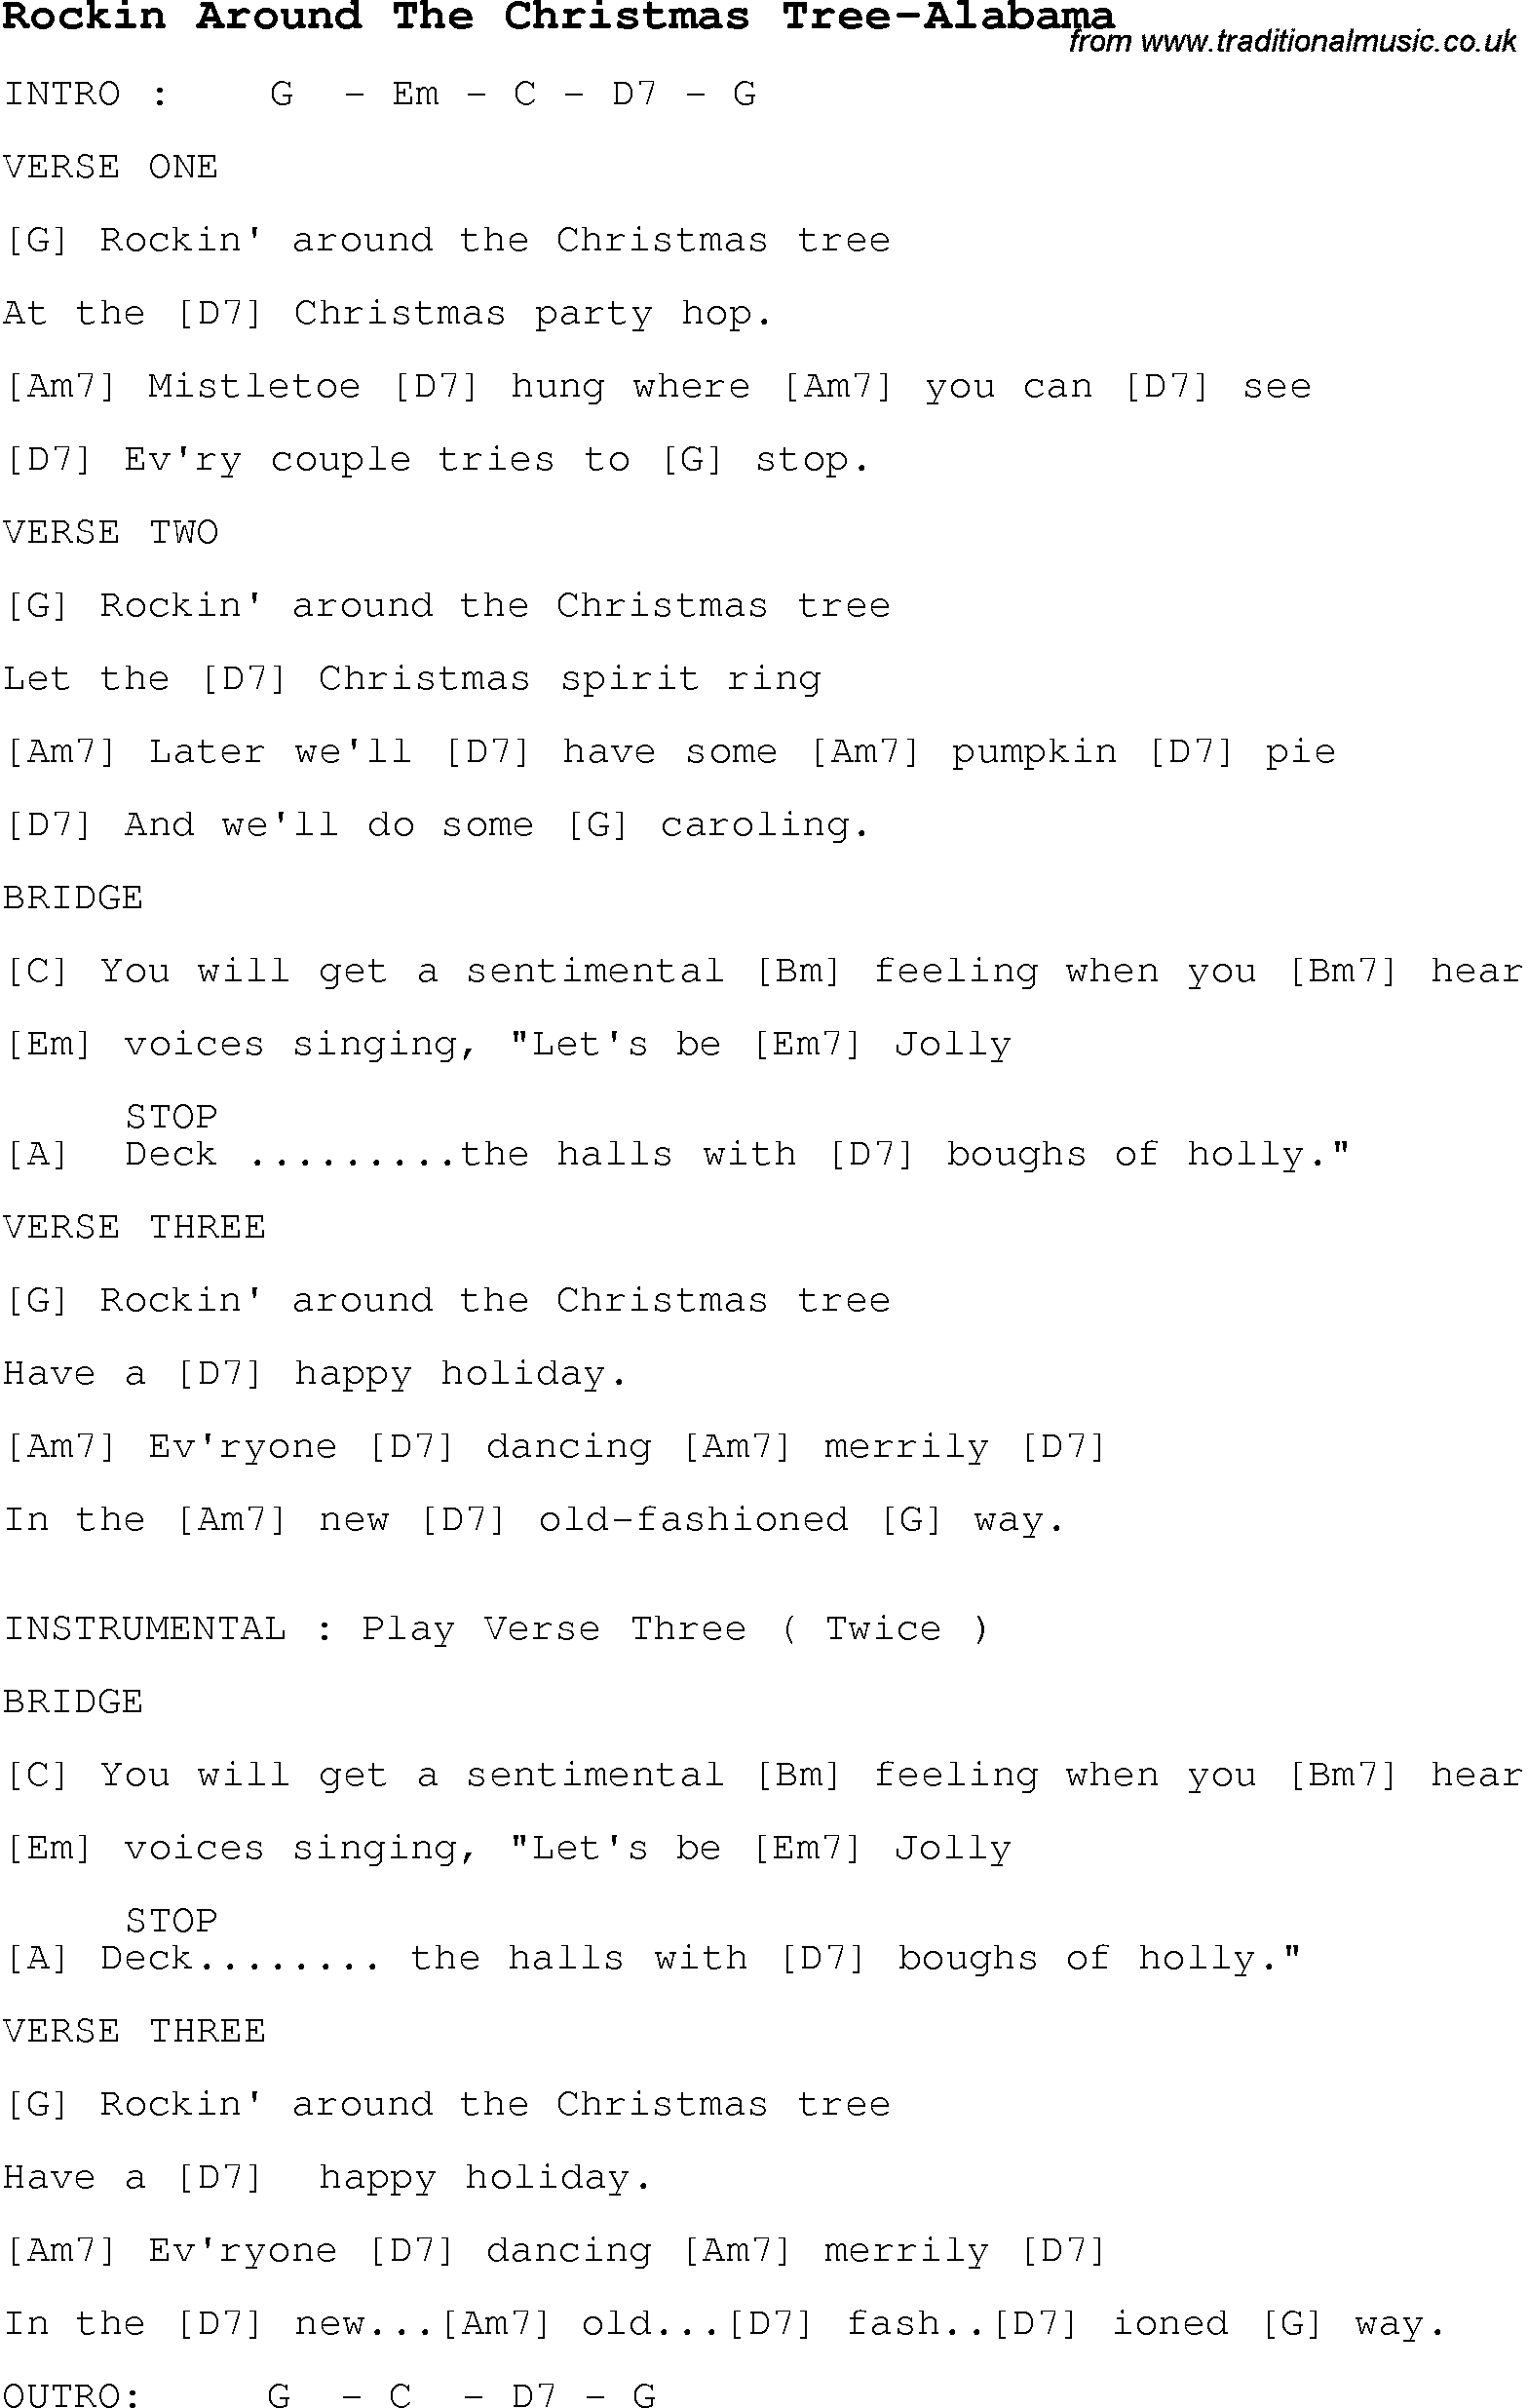 Christmas Carol/Song lyrics with chords for Rockin Around The ...